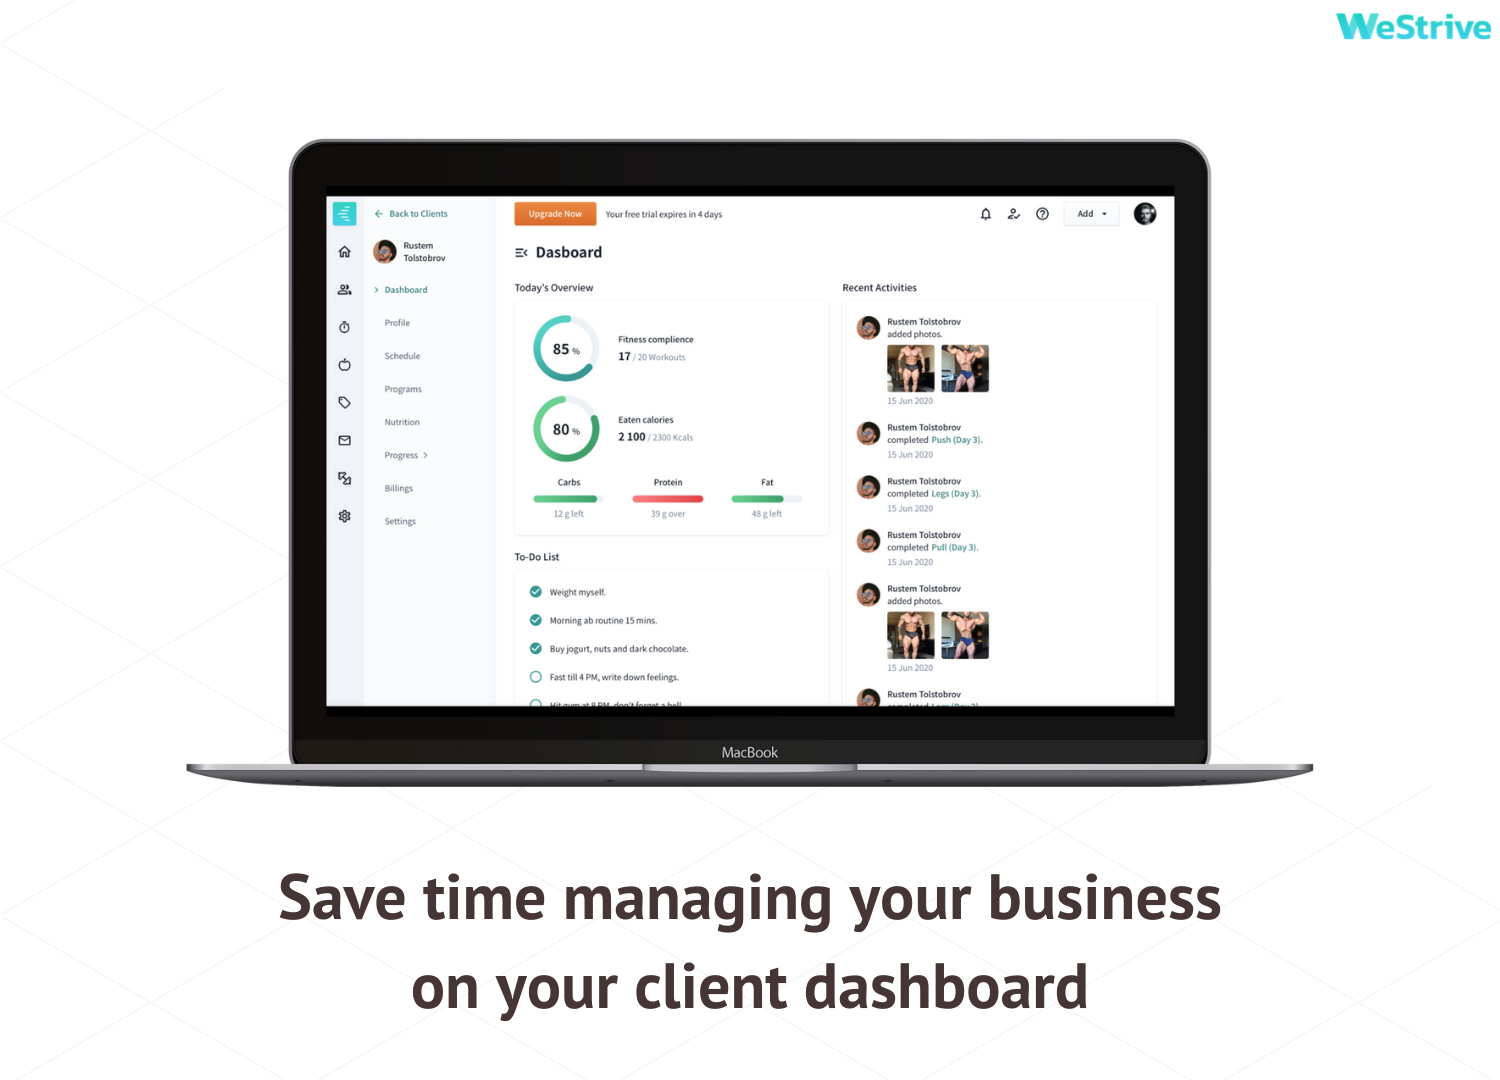 Easily manage all your clients from our WeStrive Client Dashboard